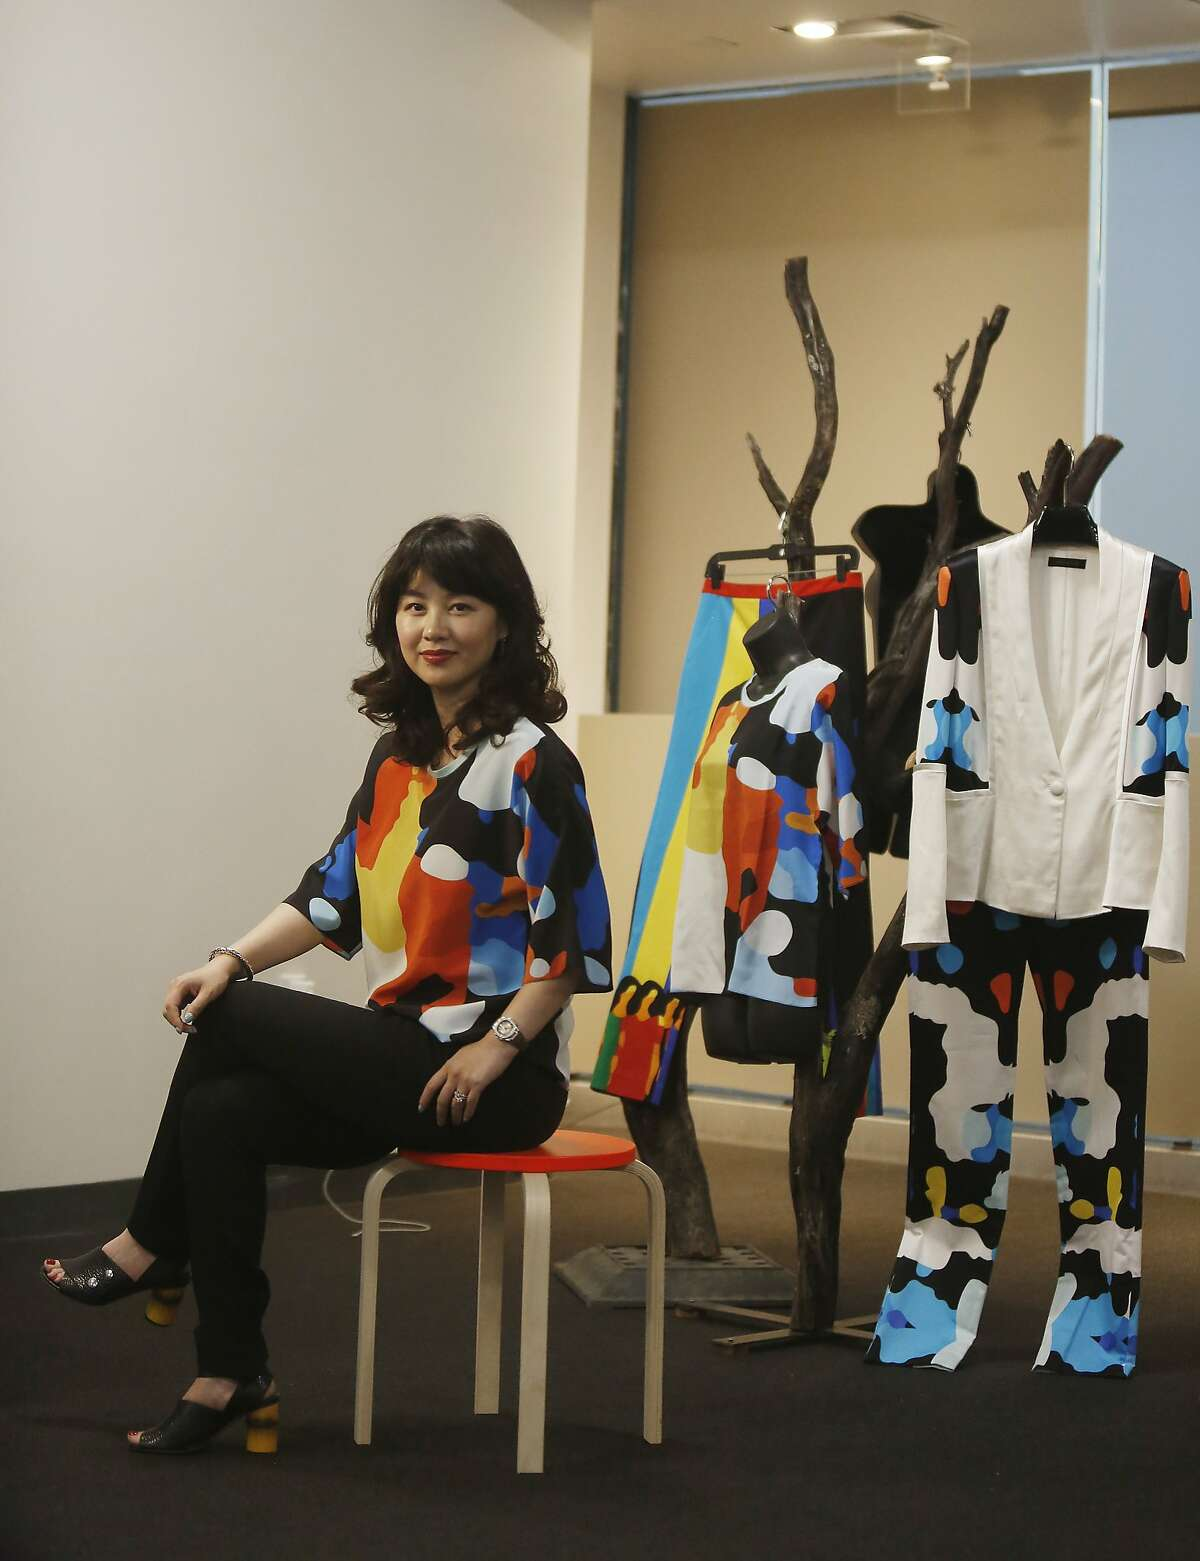 Jessie Liu, Simple Pair designer; poses with some of her designs in the new